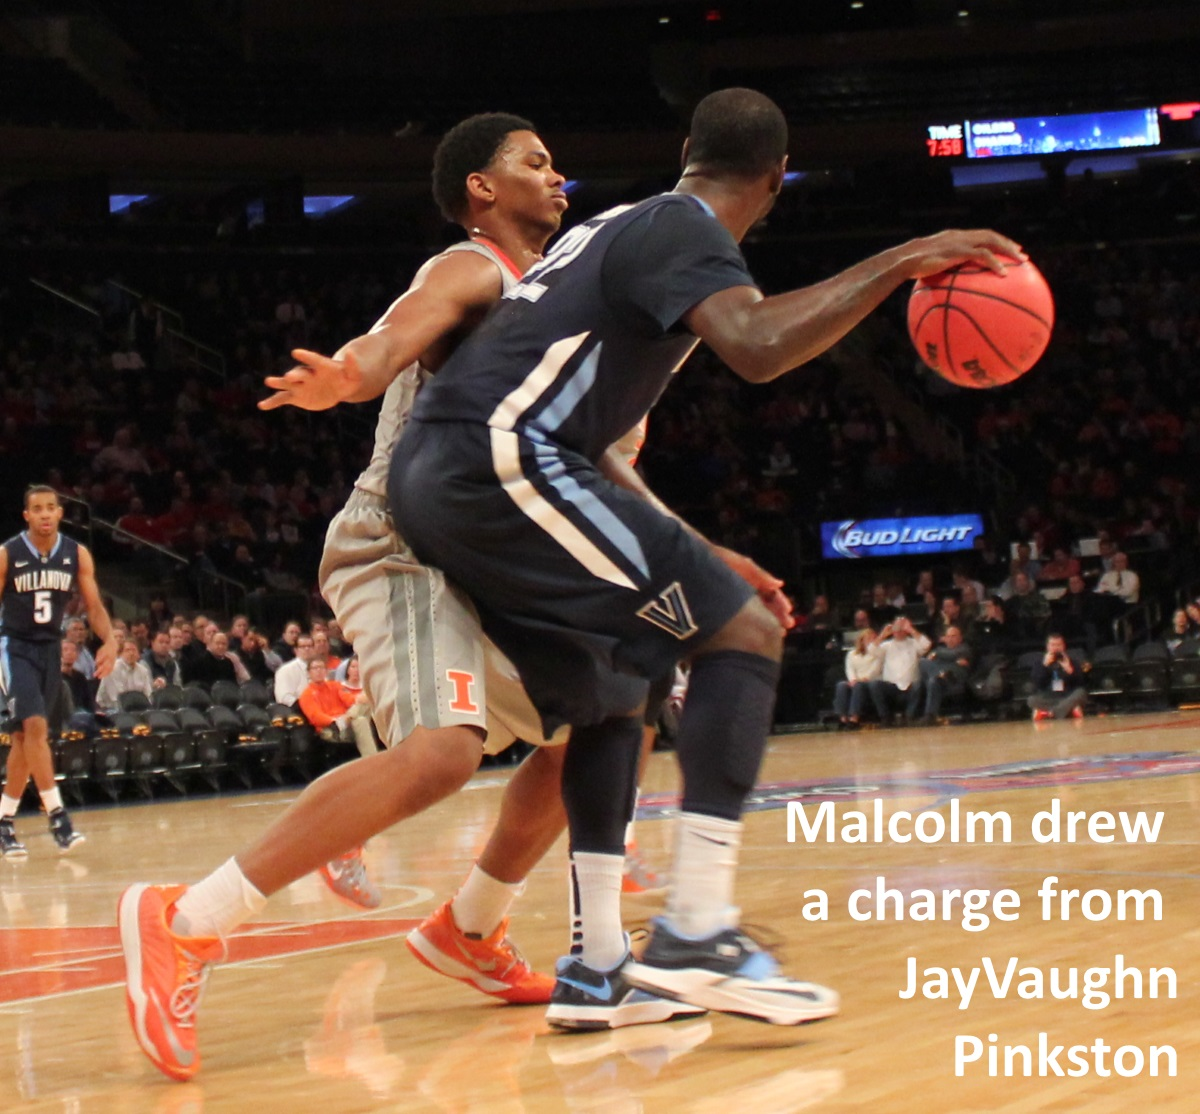 Malcolm Hill drew a charge from JayVaughn Pinkston